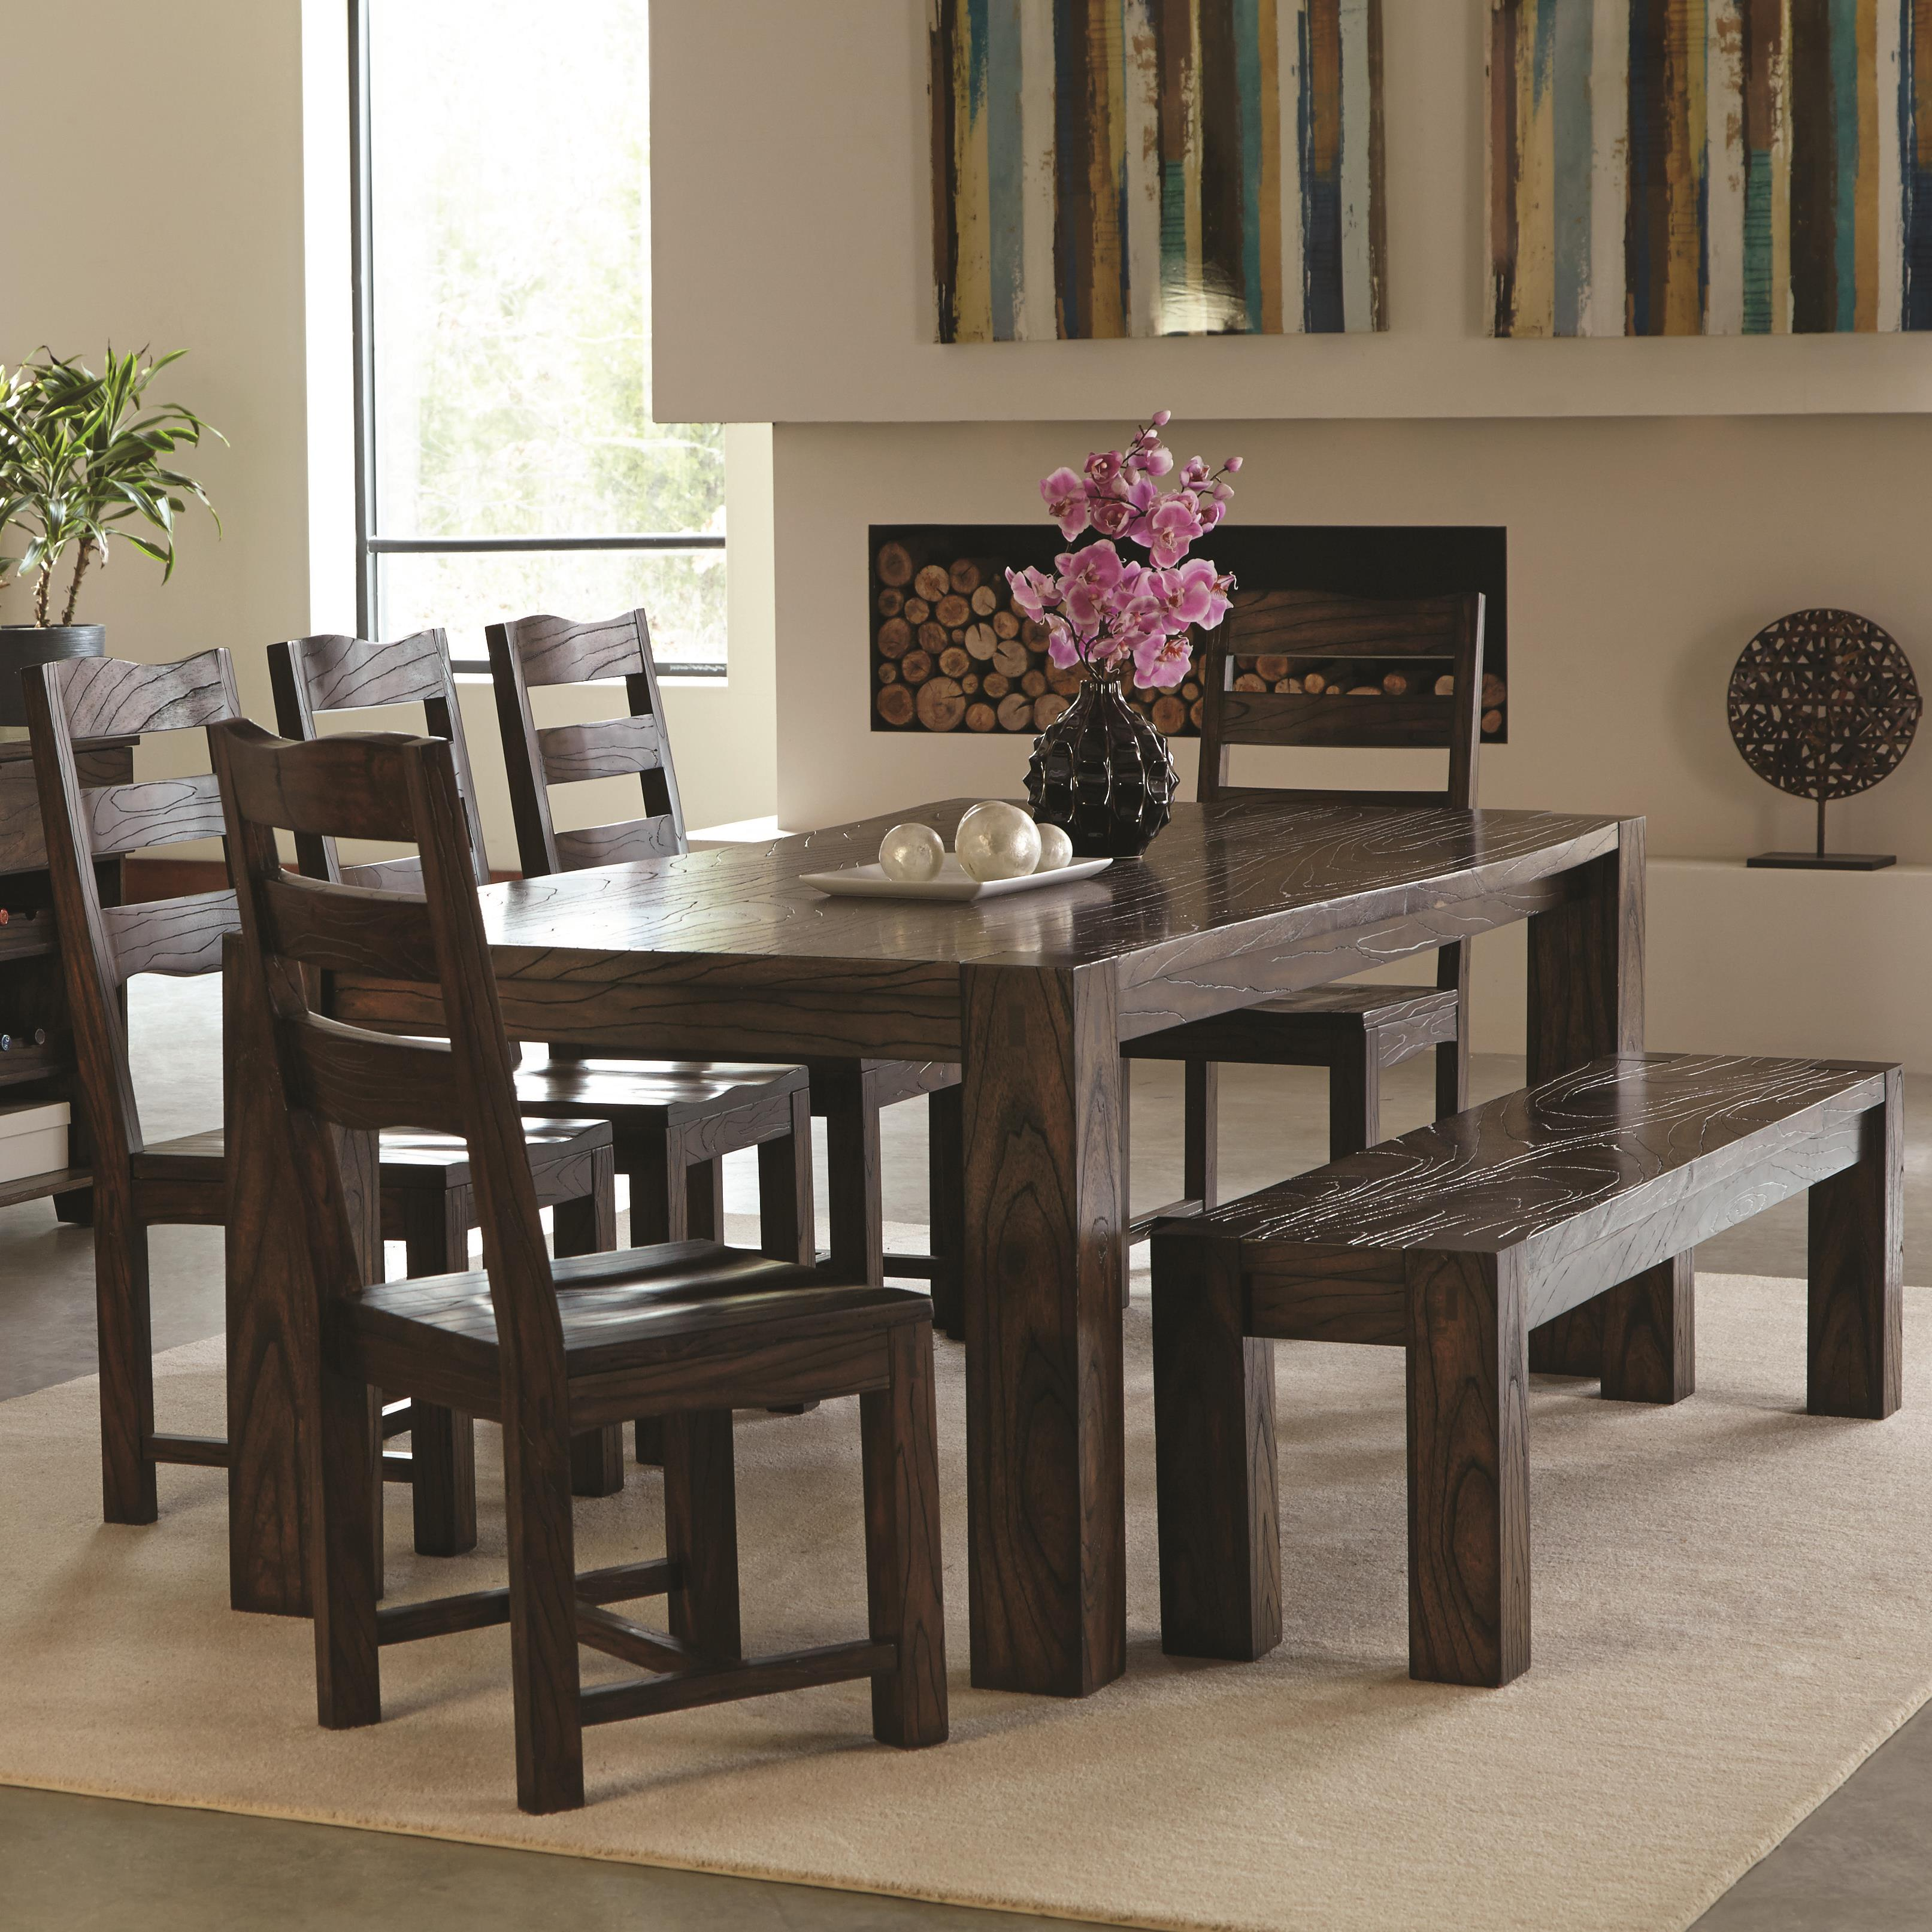 Baxton studio leeds brown wood collapsible pub table set | Bana Home ...